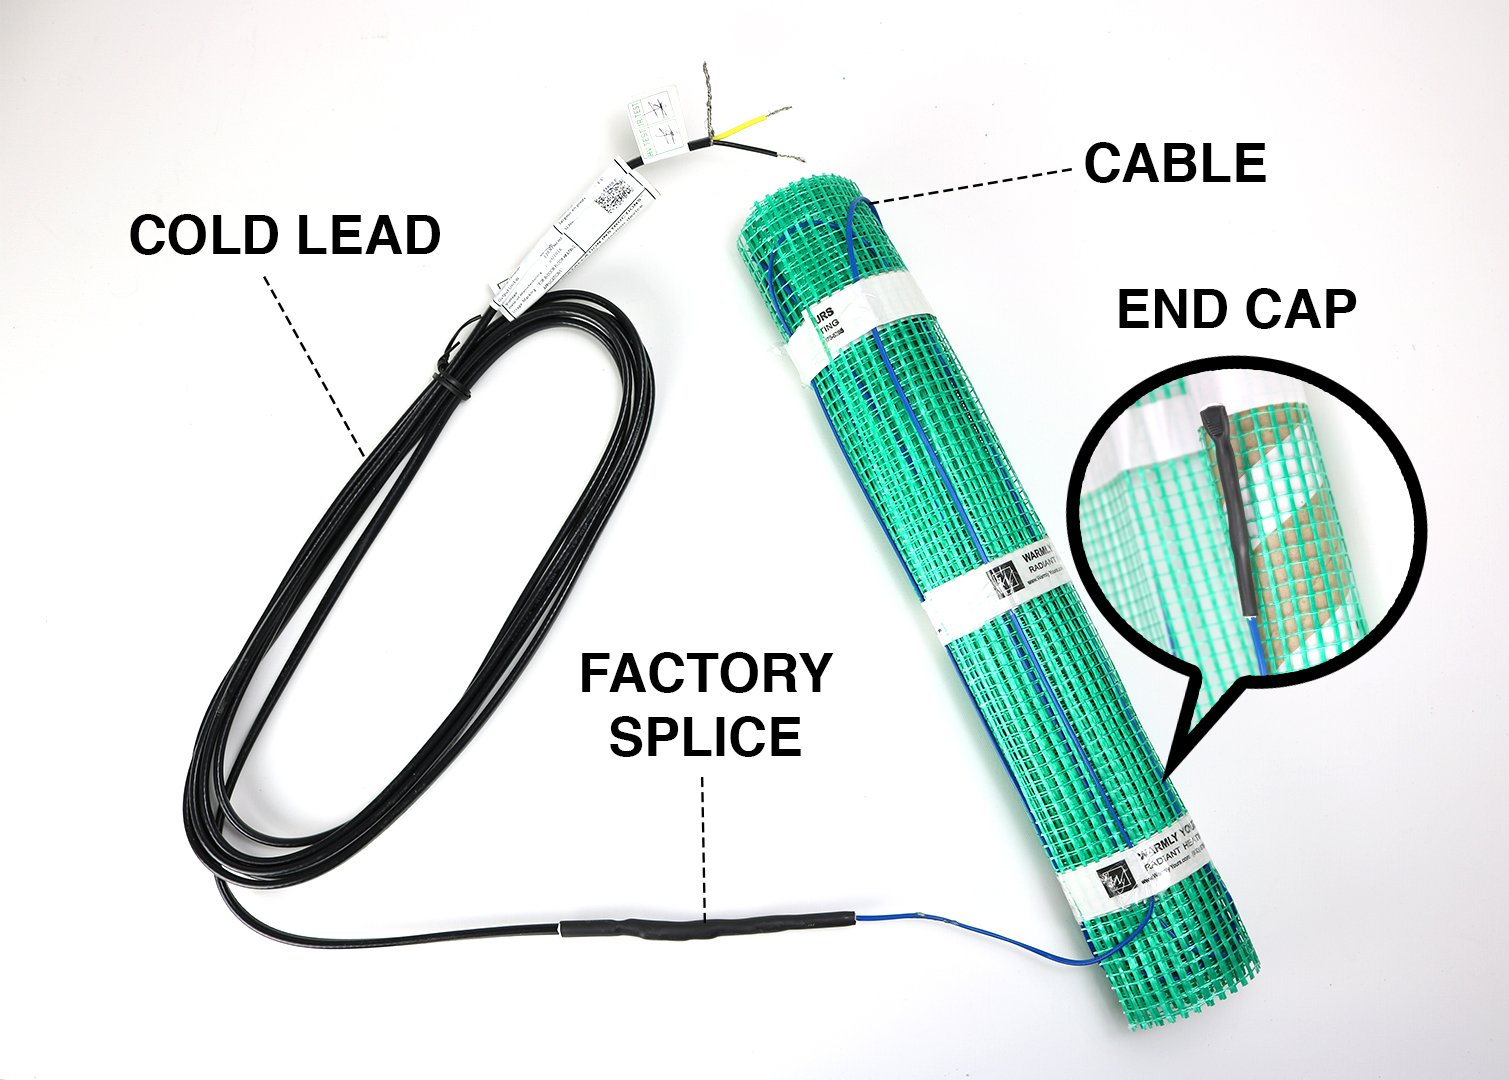 1ft Single Cold Lead For Radiant In Floor Heating Systems Room Wiring Diagrams Blue Star Tempzone Flex Roll Electric Mat Diagram Labeled